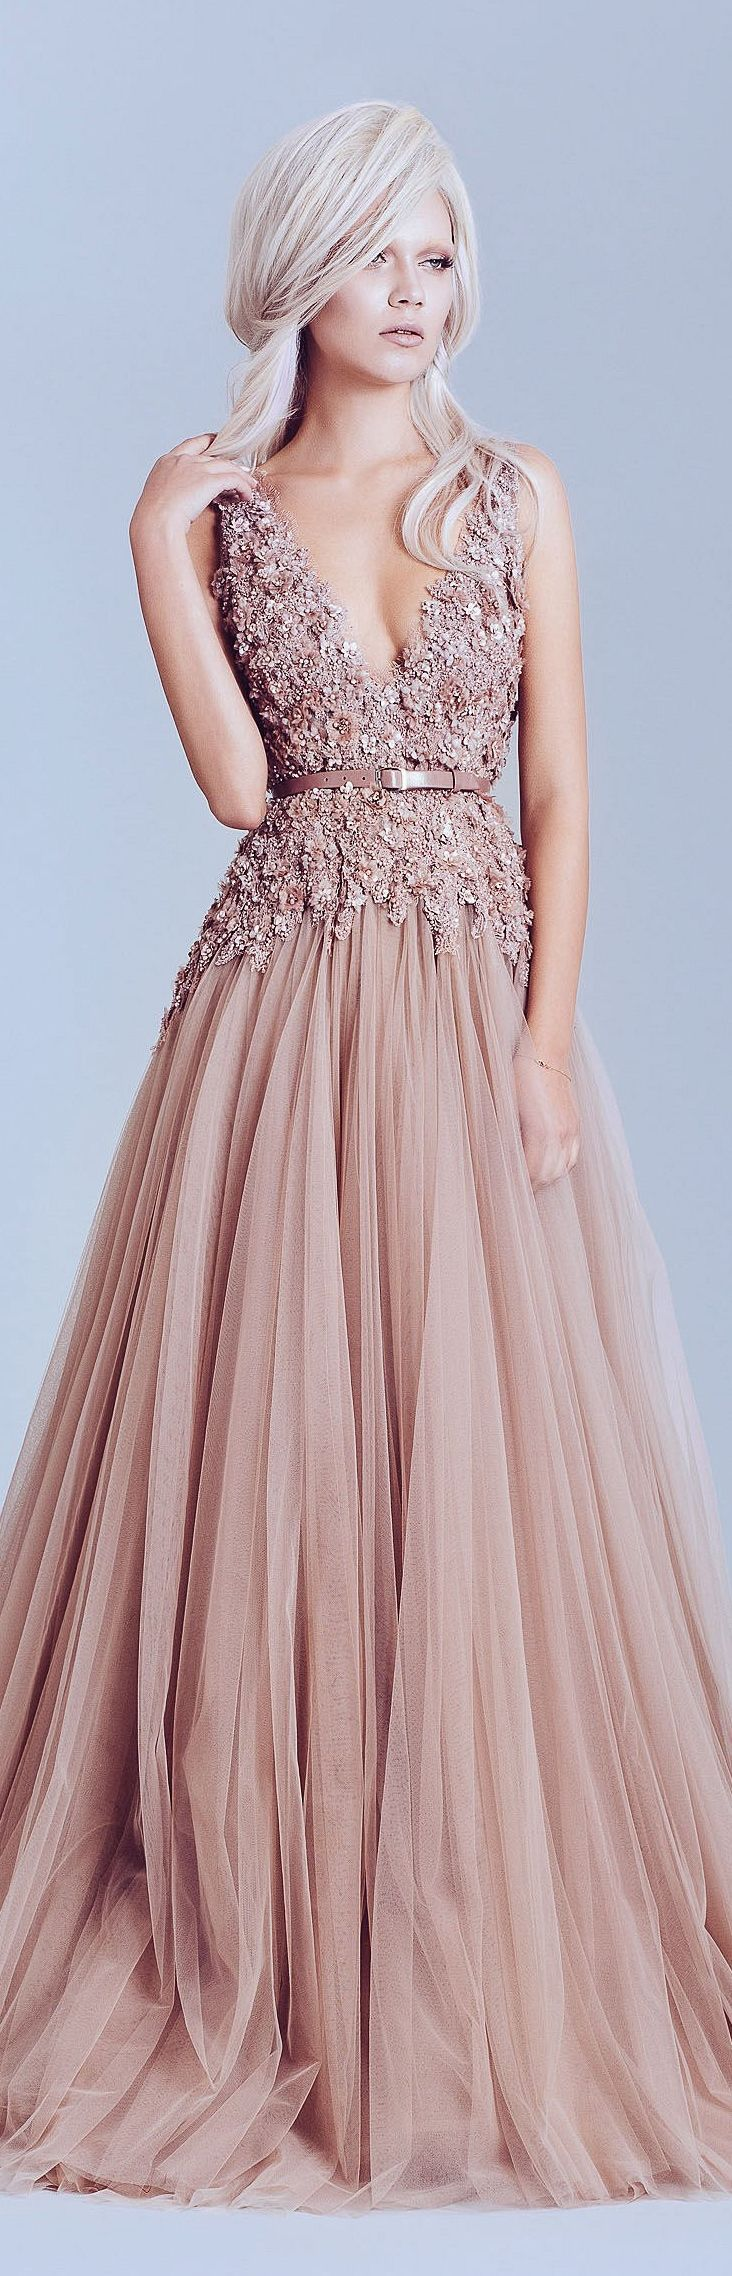 DesertRose,;,Nude and Blush Gowns - Shop Now,;,